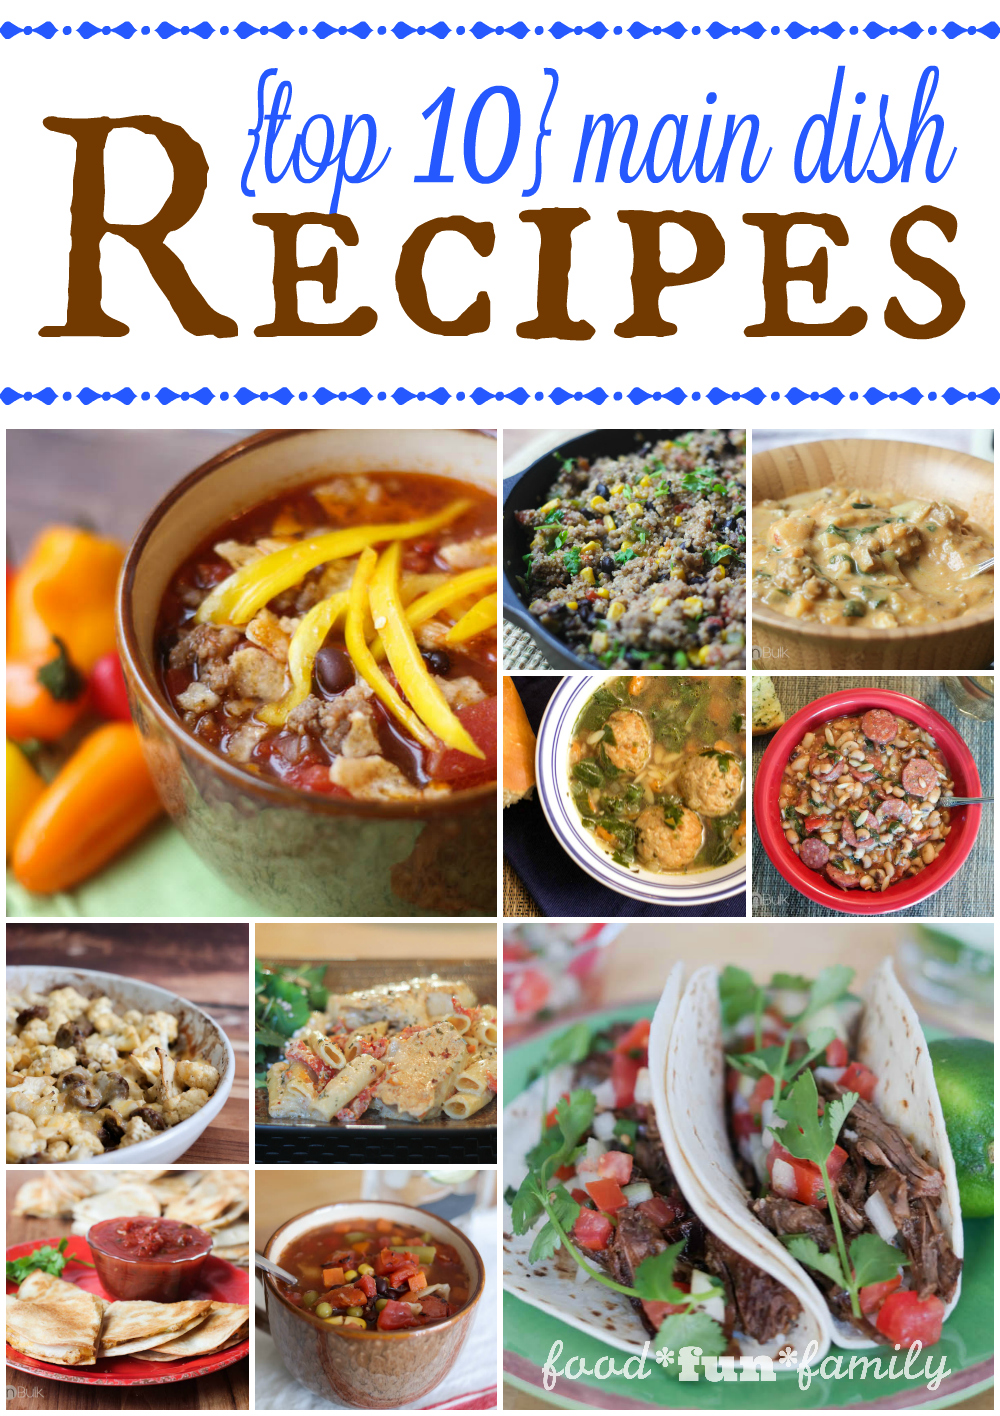 Top 10 Main Dish Recipes of 2015 from Food Fun Family